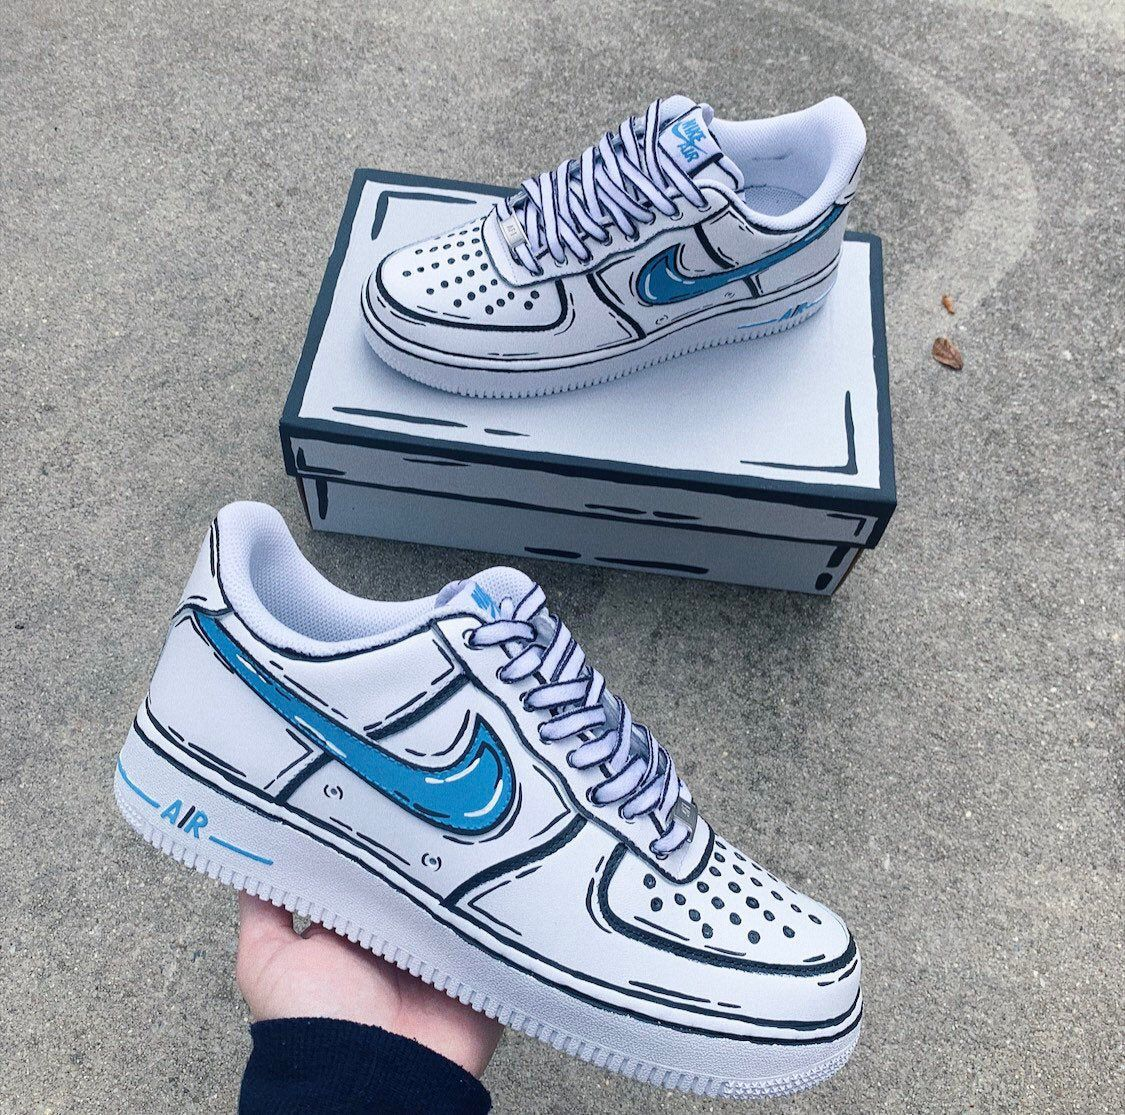 Cartoon Nike Air Force 1 Custom Shoes (Made To Order